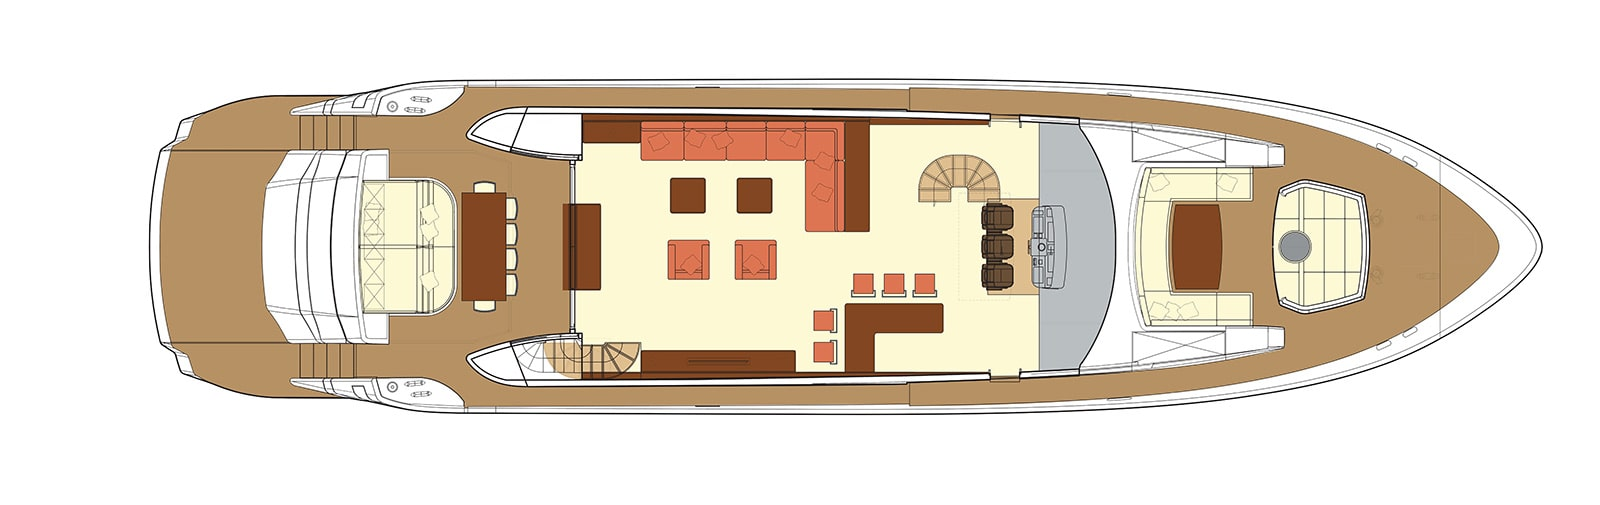 F93 Main Deck - Fly Bridge Yacht